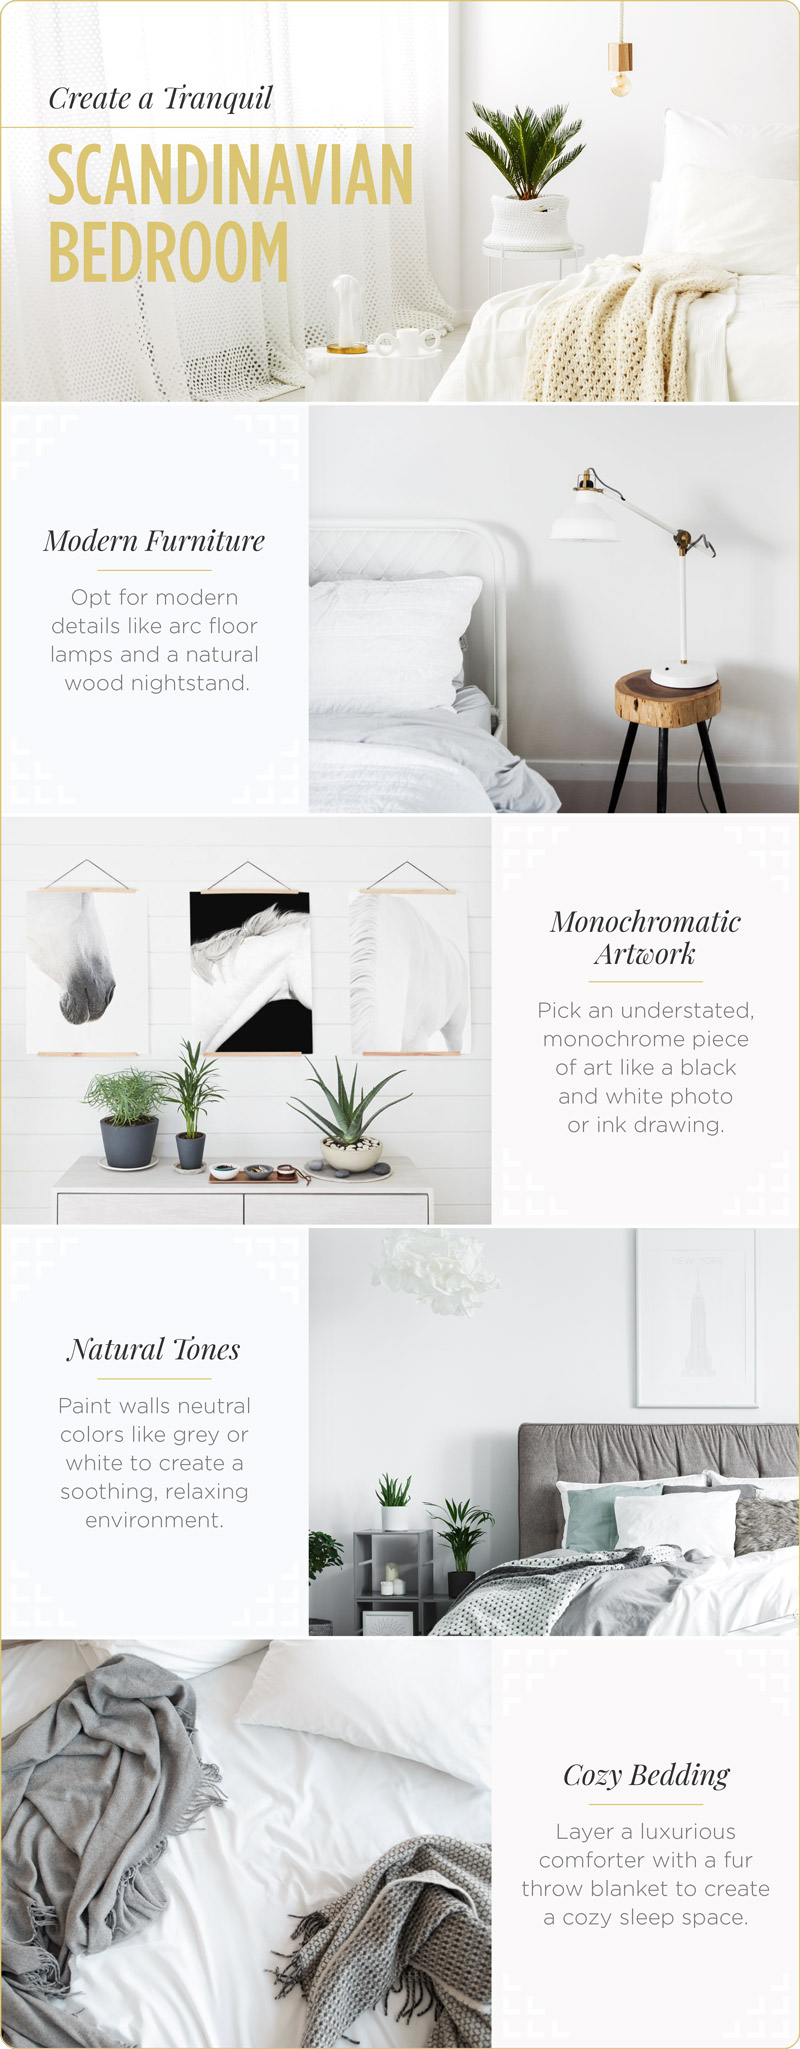 scandinavian-bedroom.jpg